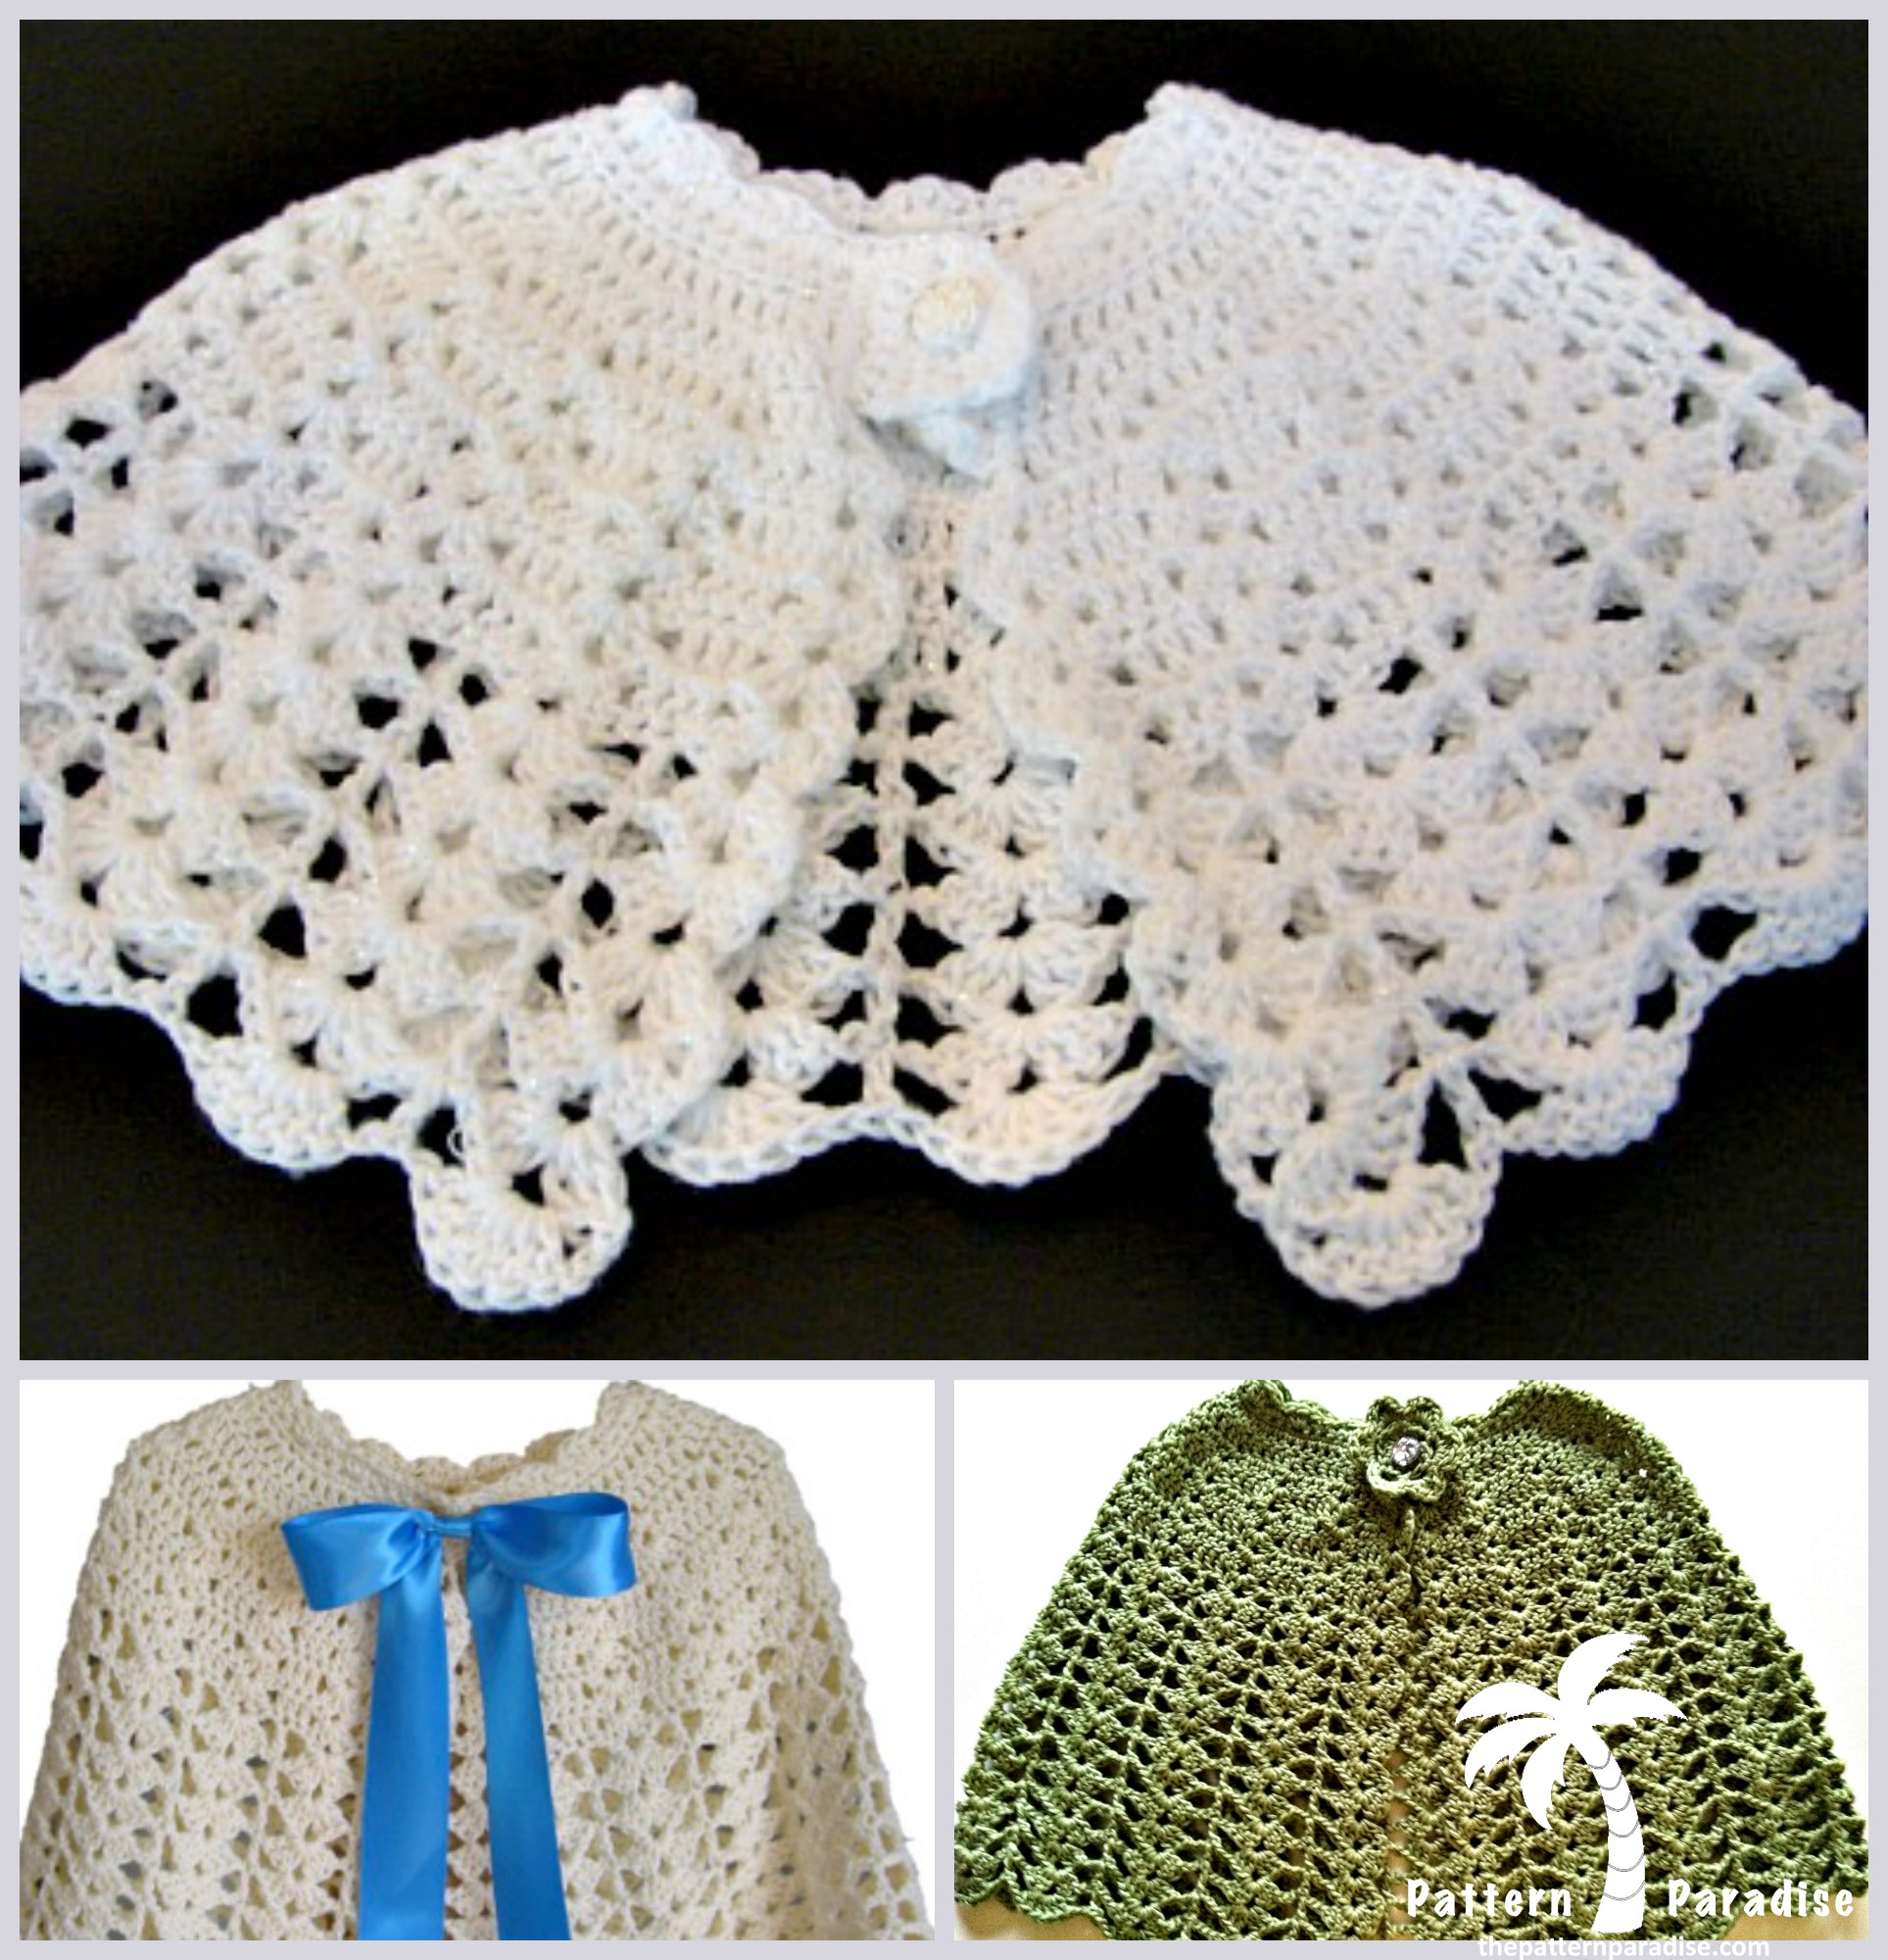 Crochet Patterns Capes : Crochet Cape & Holiday Dresses - Pattern Paradise